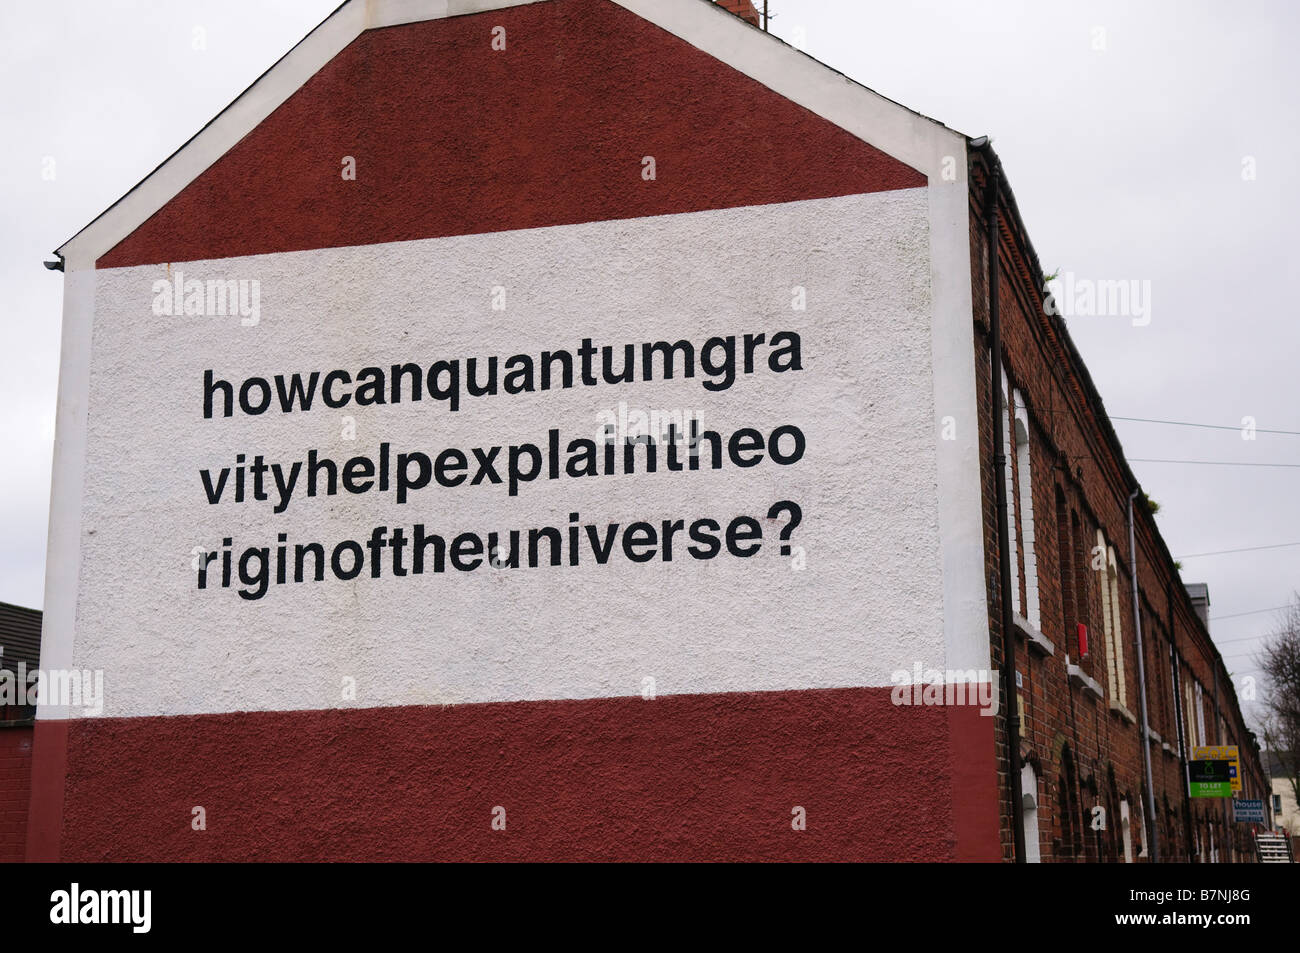 Mural in Belfast 'How can quantum gravity help explain the origin of the universe?' painted on side of terraced - Stock Image